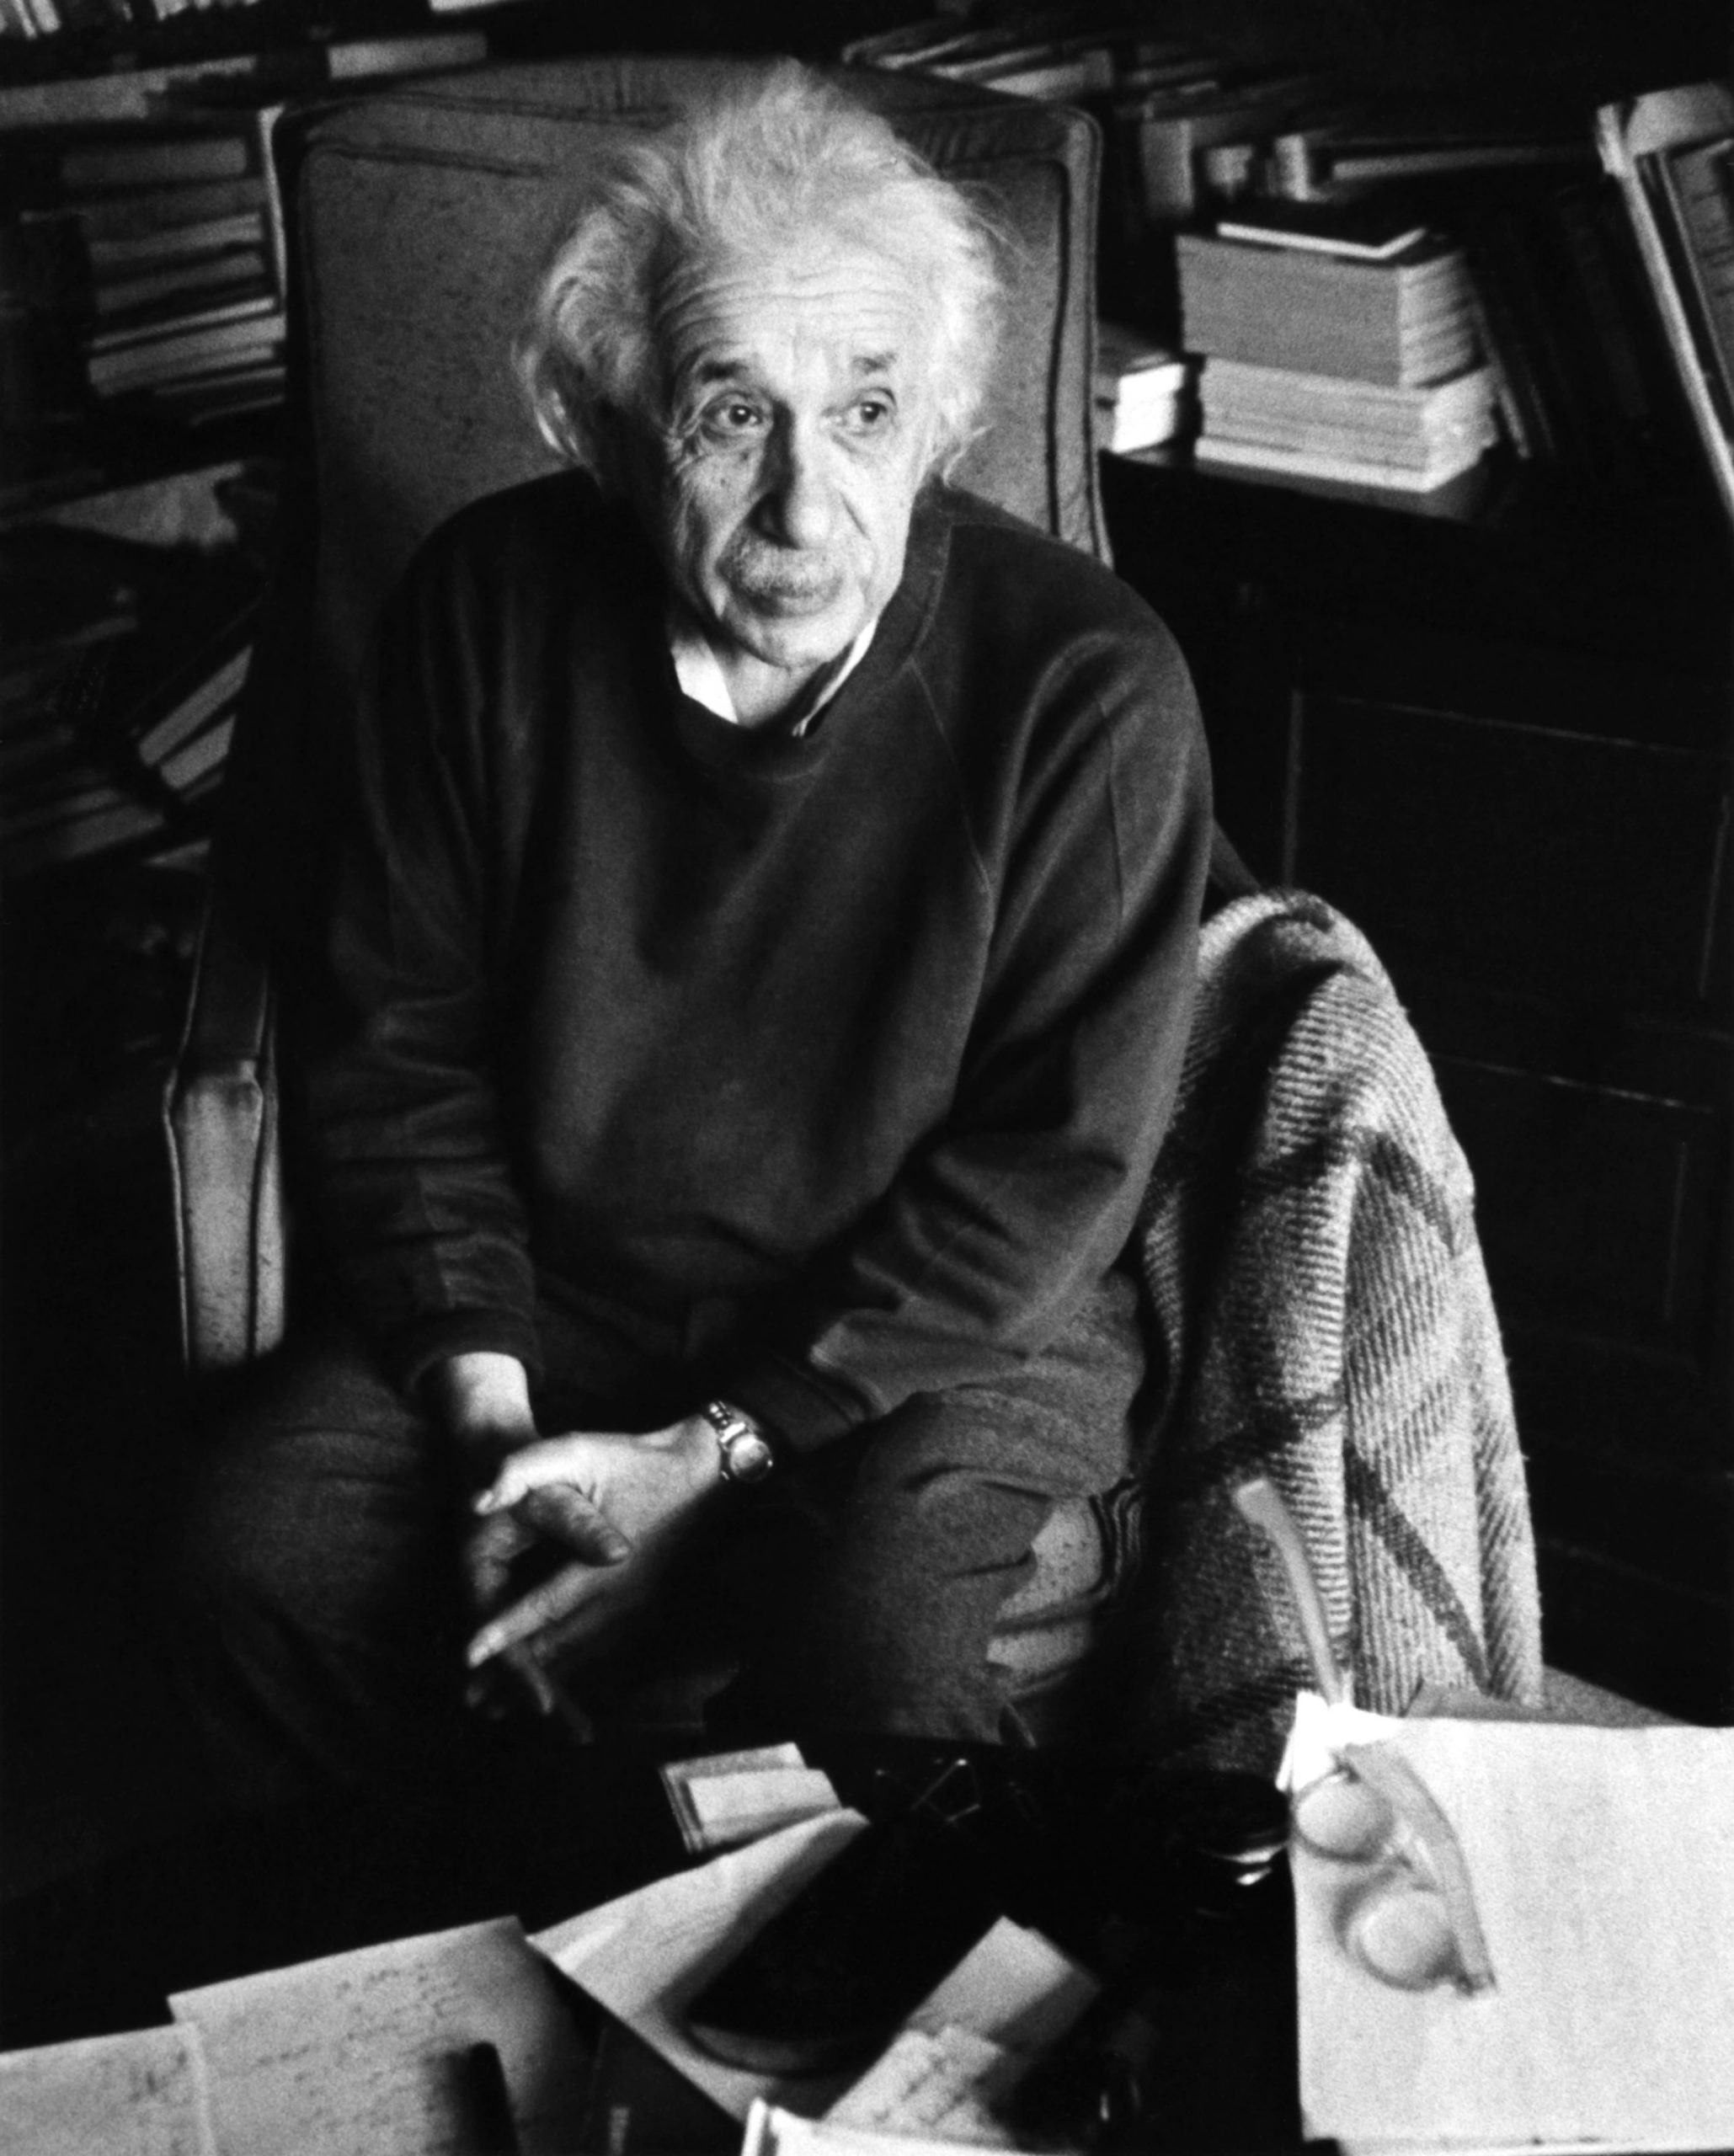 Einstein spent his last two decades at the Institute for Advanced Study (IAS), in Princeton, New Jersey. The institute relieved him of teaching duties and allowed him to devote himself to research. Einstein in his IAS office, 1955